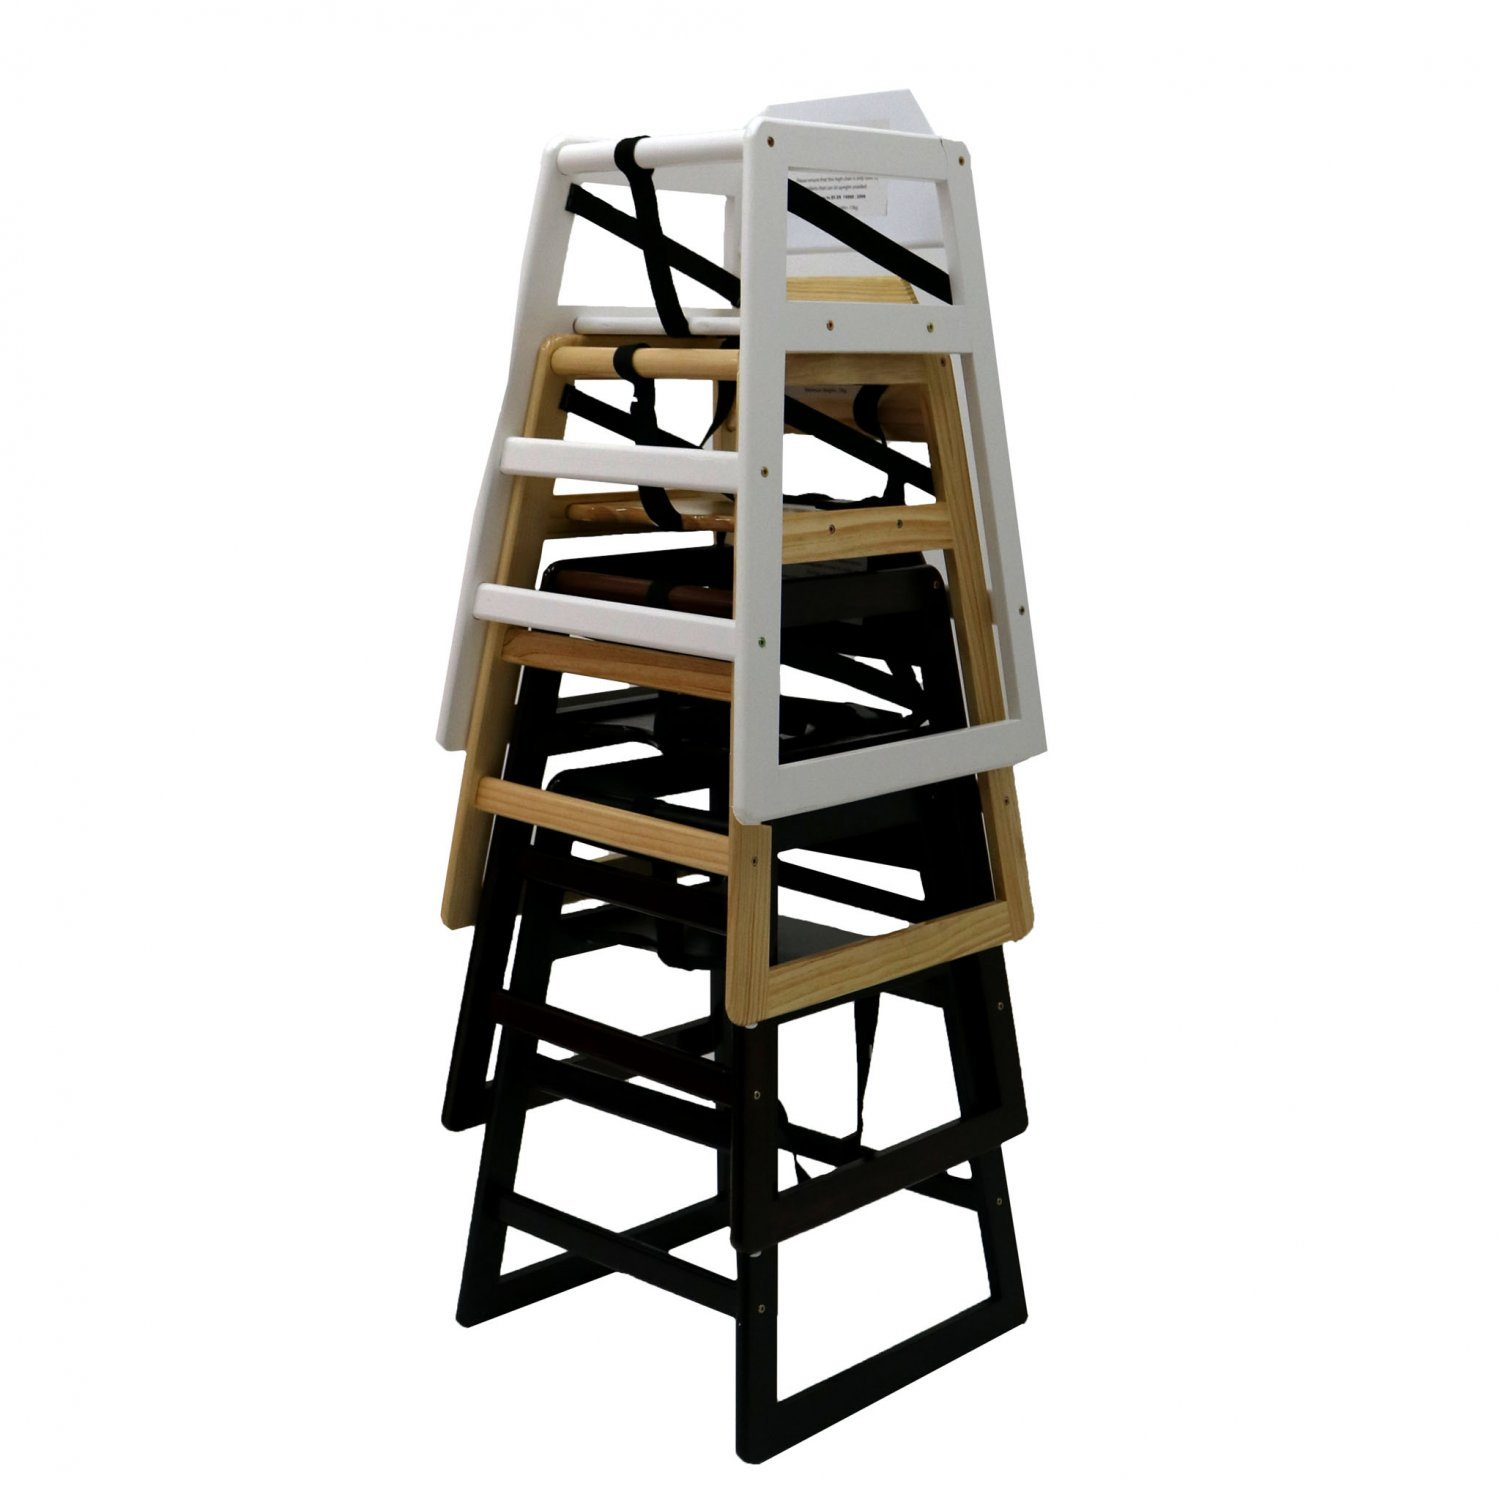 black high chair 28 images wooden high chair black 163 24 99